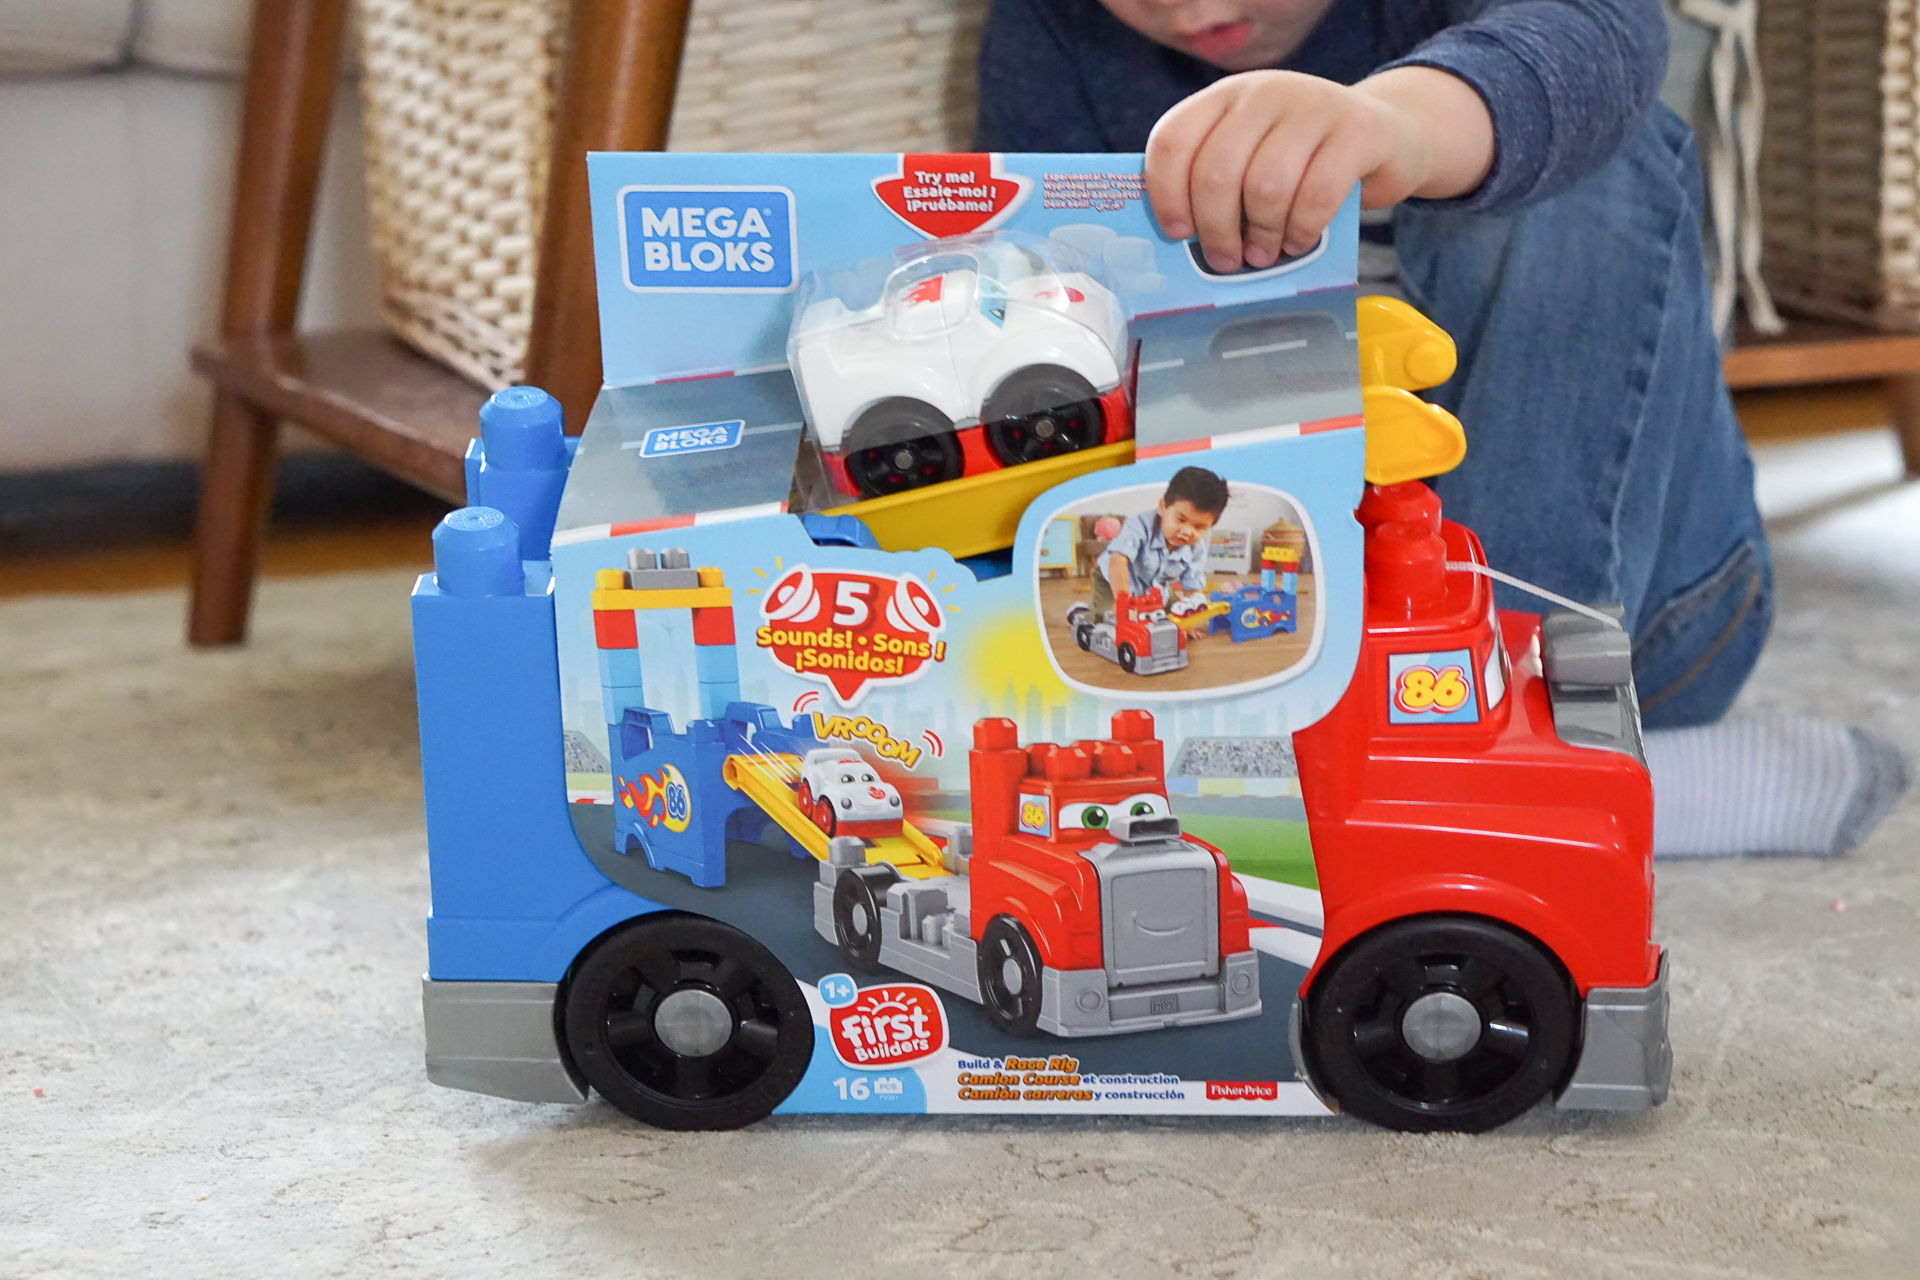 Mega Bloks Make Great Gifts They'll Grow With, Toddler to Preschooler